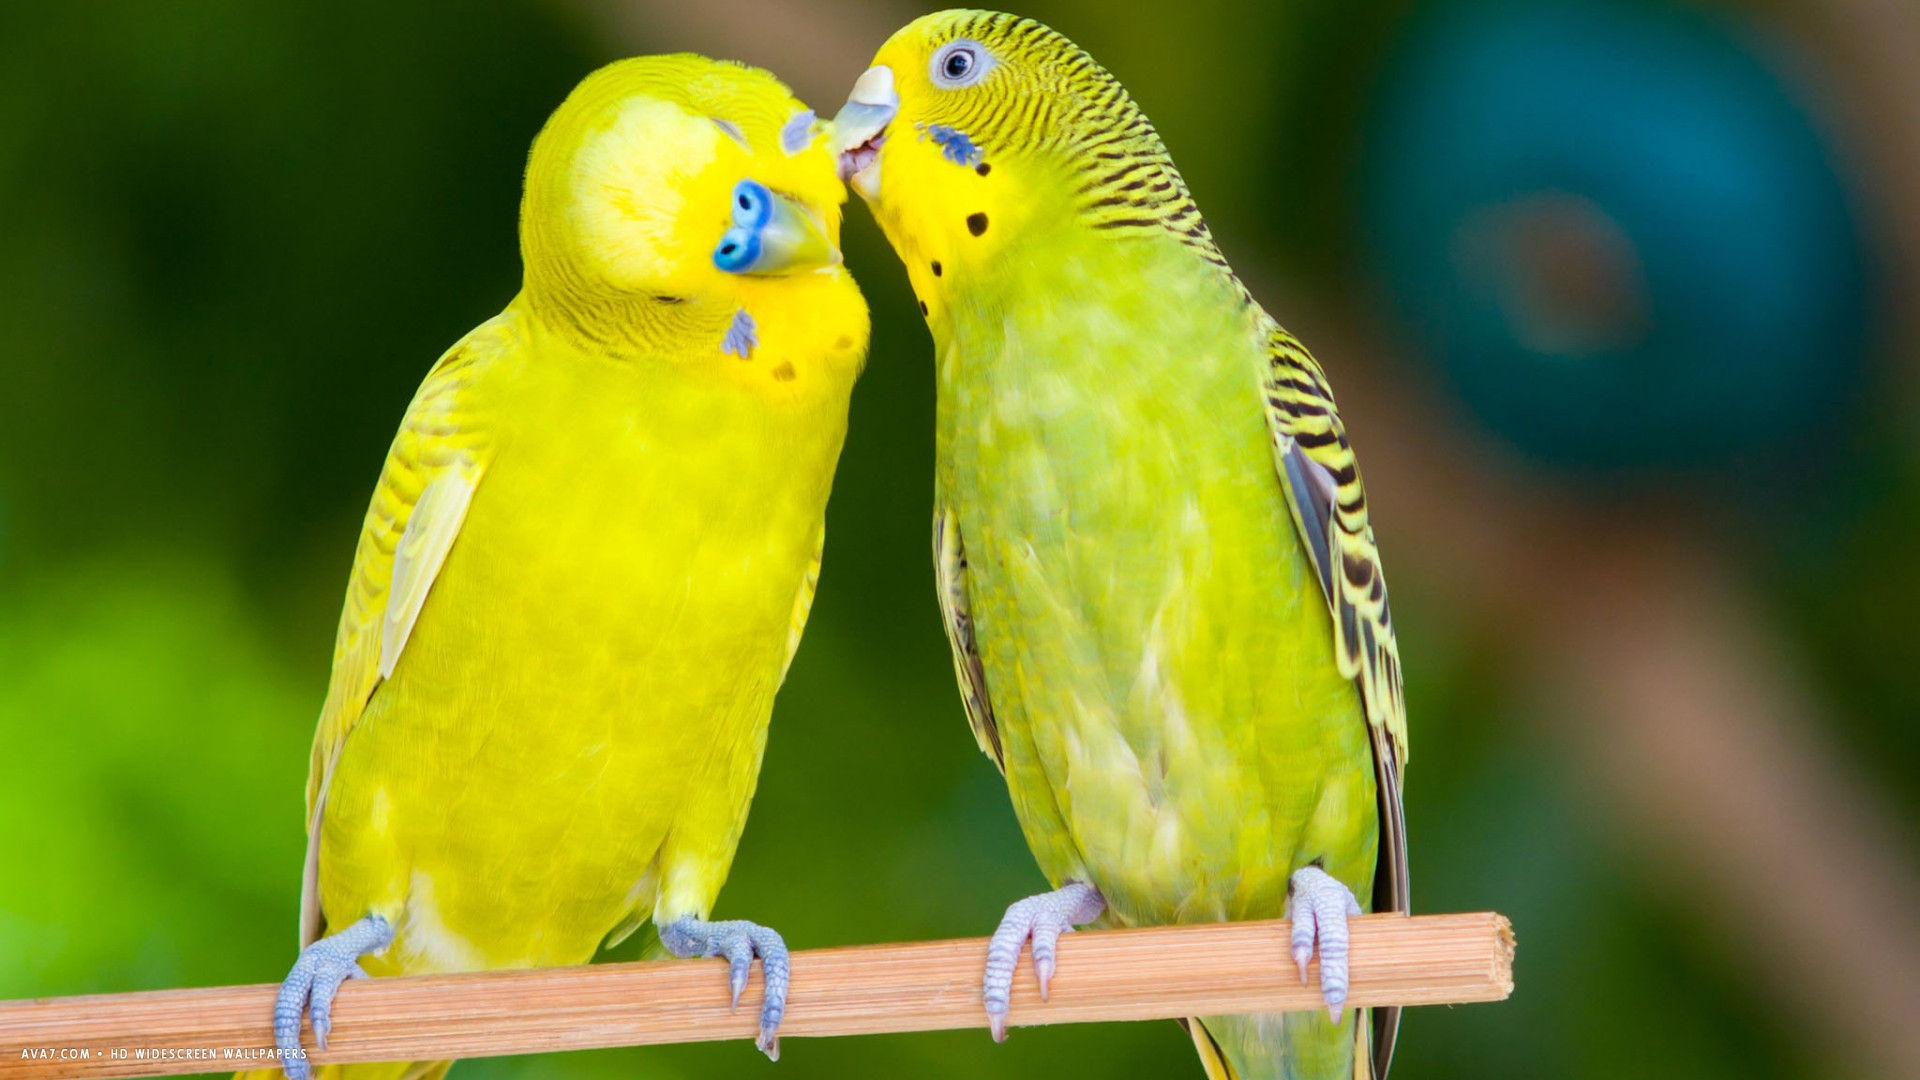 Best-images-of-love-birds-hd-Cute-Love-Bird-Colorful-Parrot-Hd-inside-Images-Of-Love-wallpaper-wp3603281